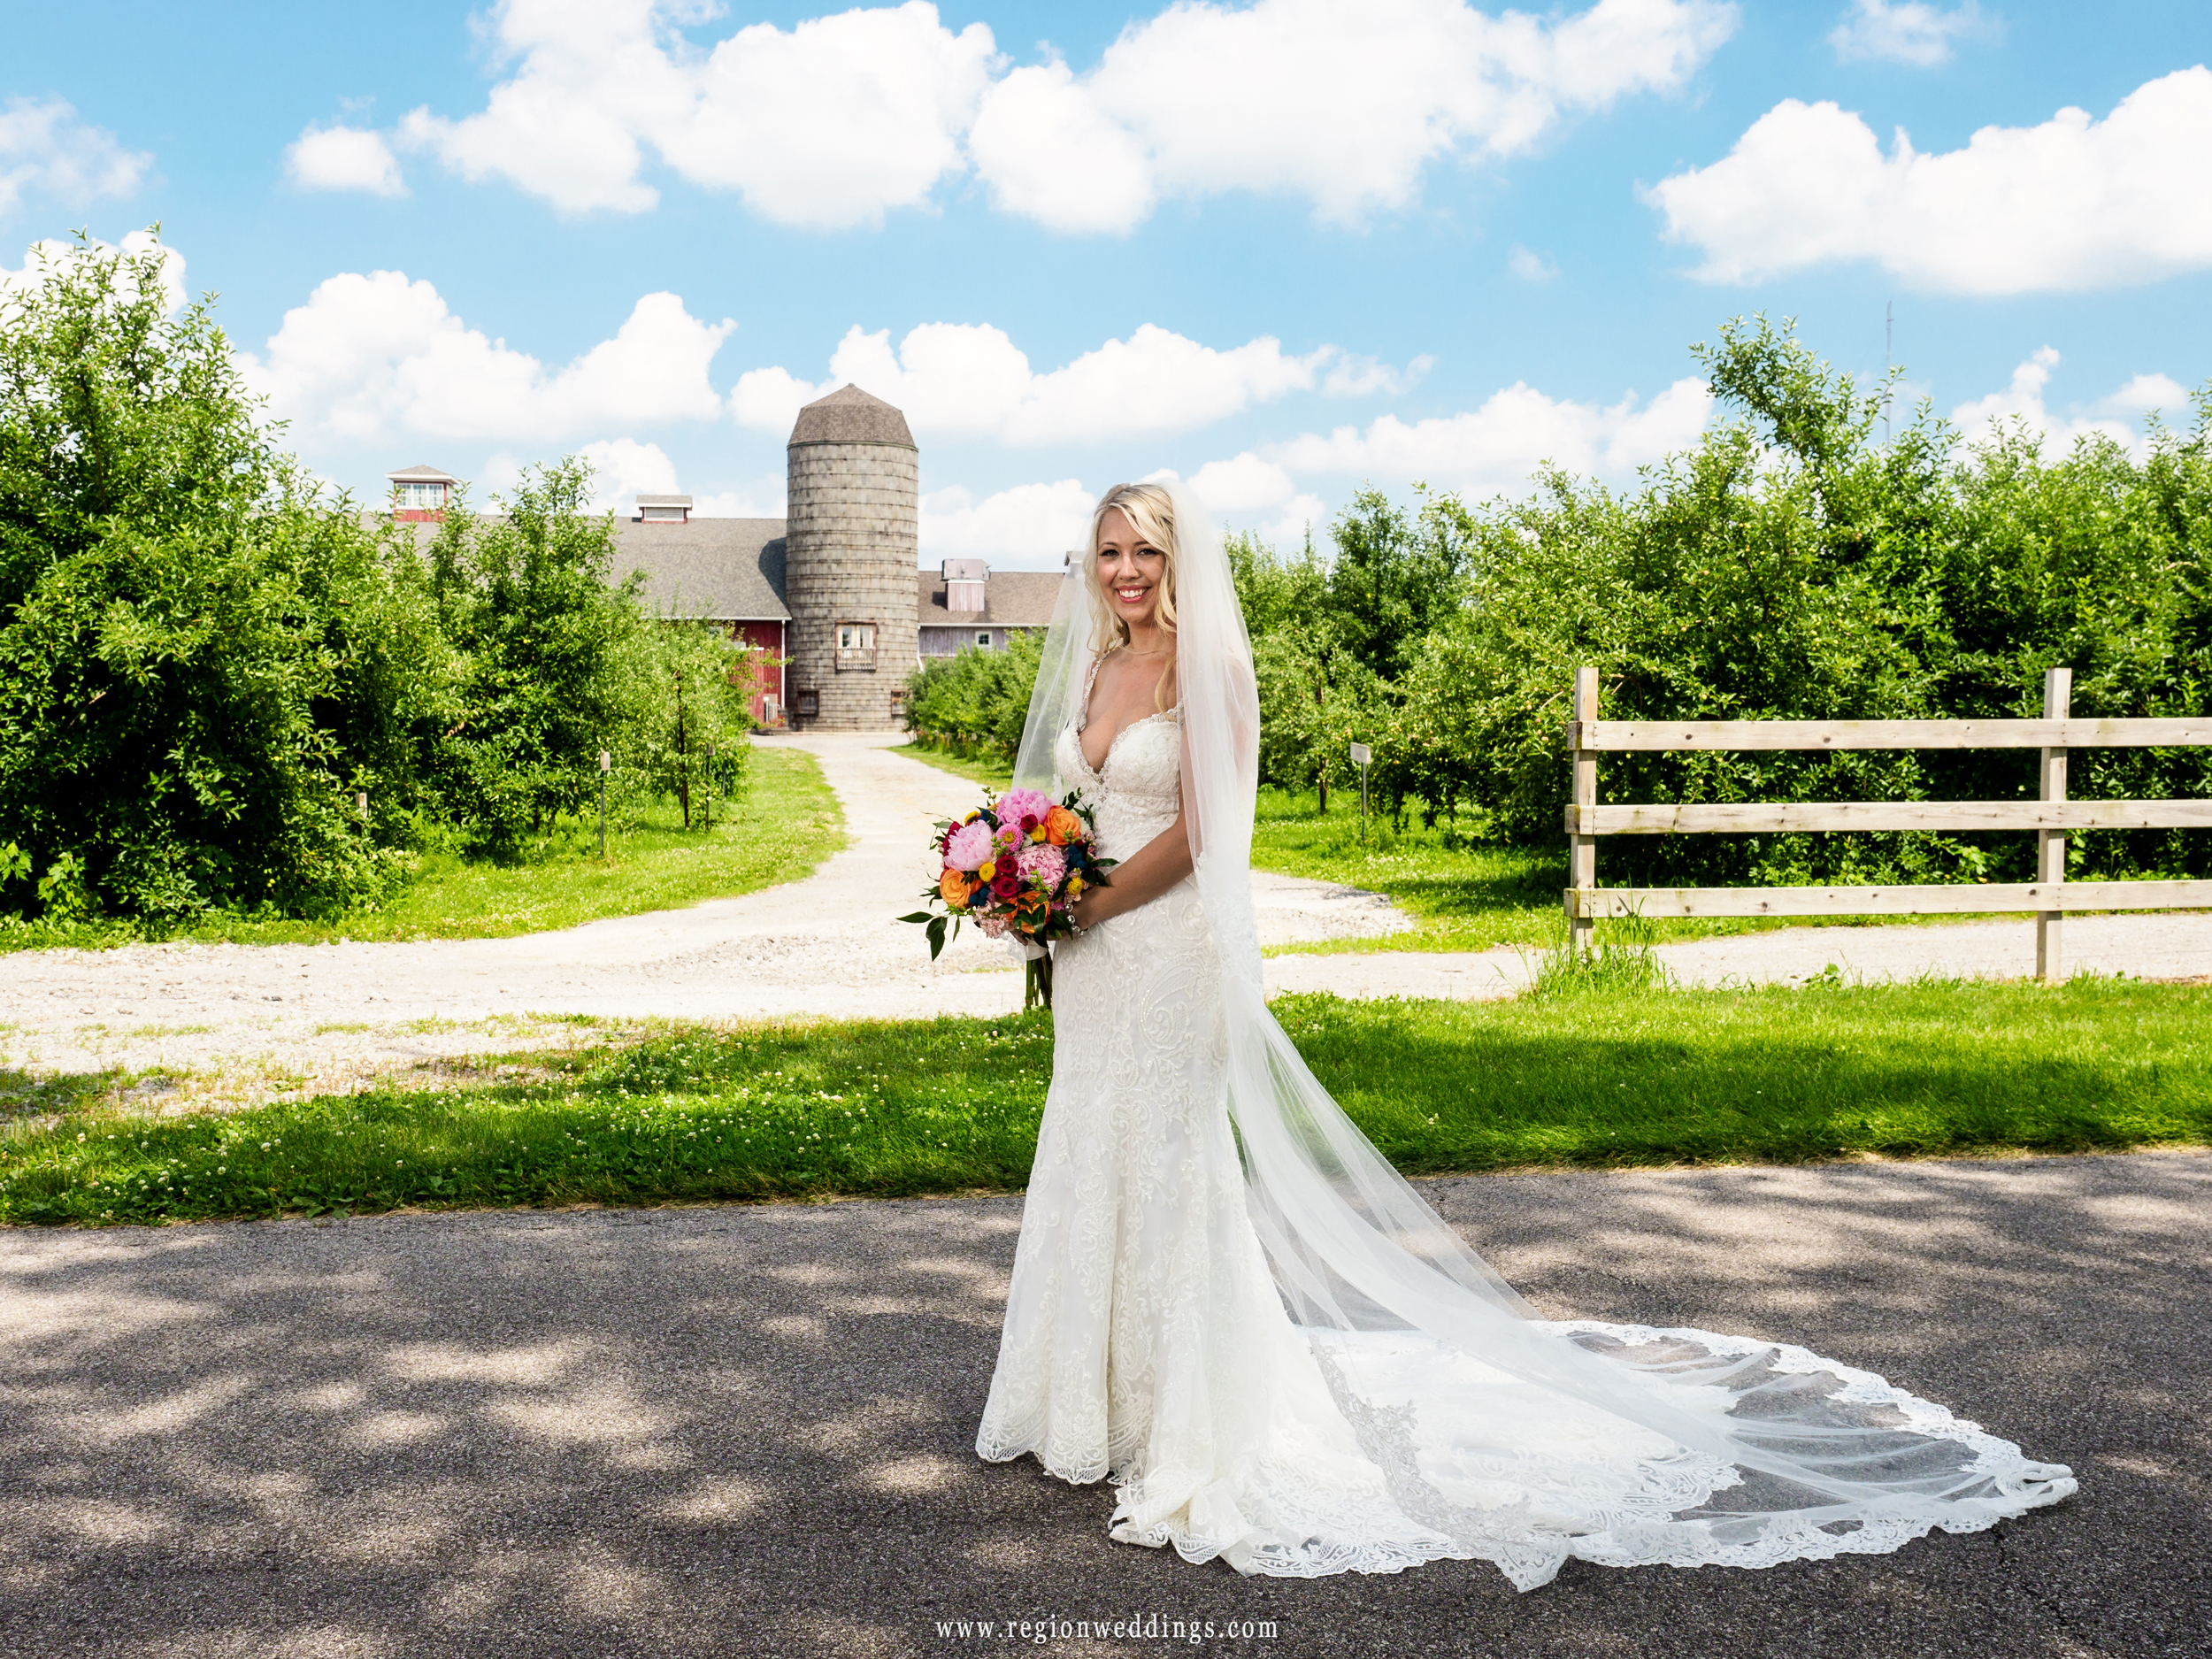 A beautiful bride shows off her dress with the County Line Orchard grain silo in the background.